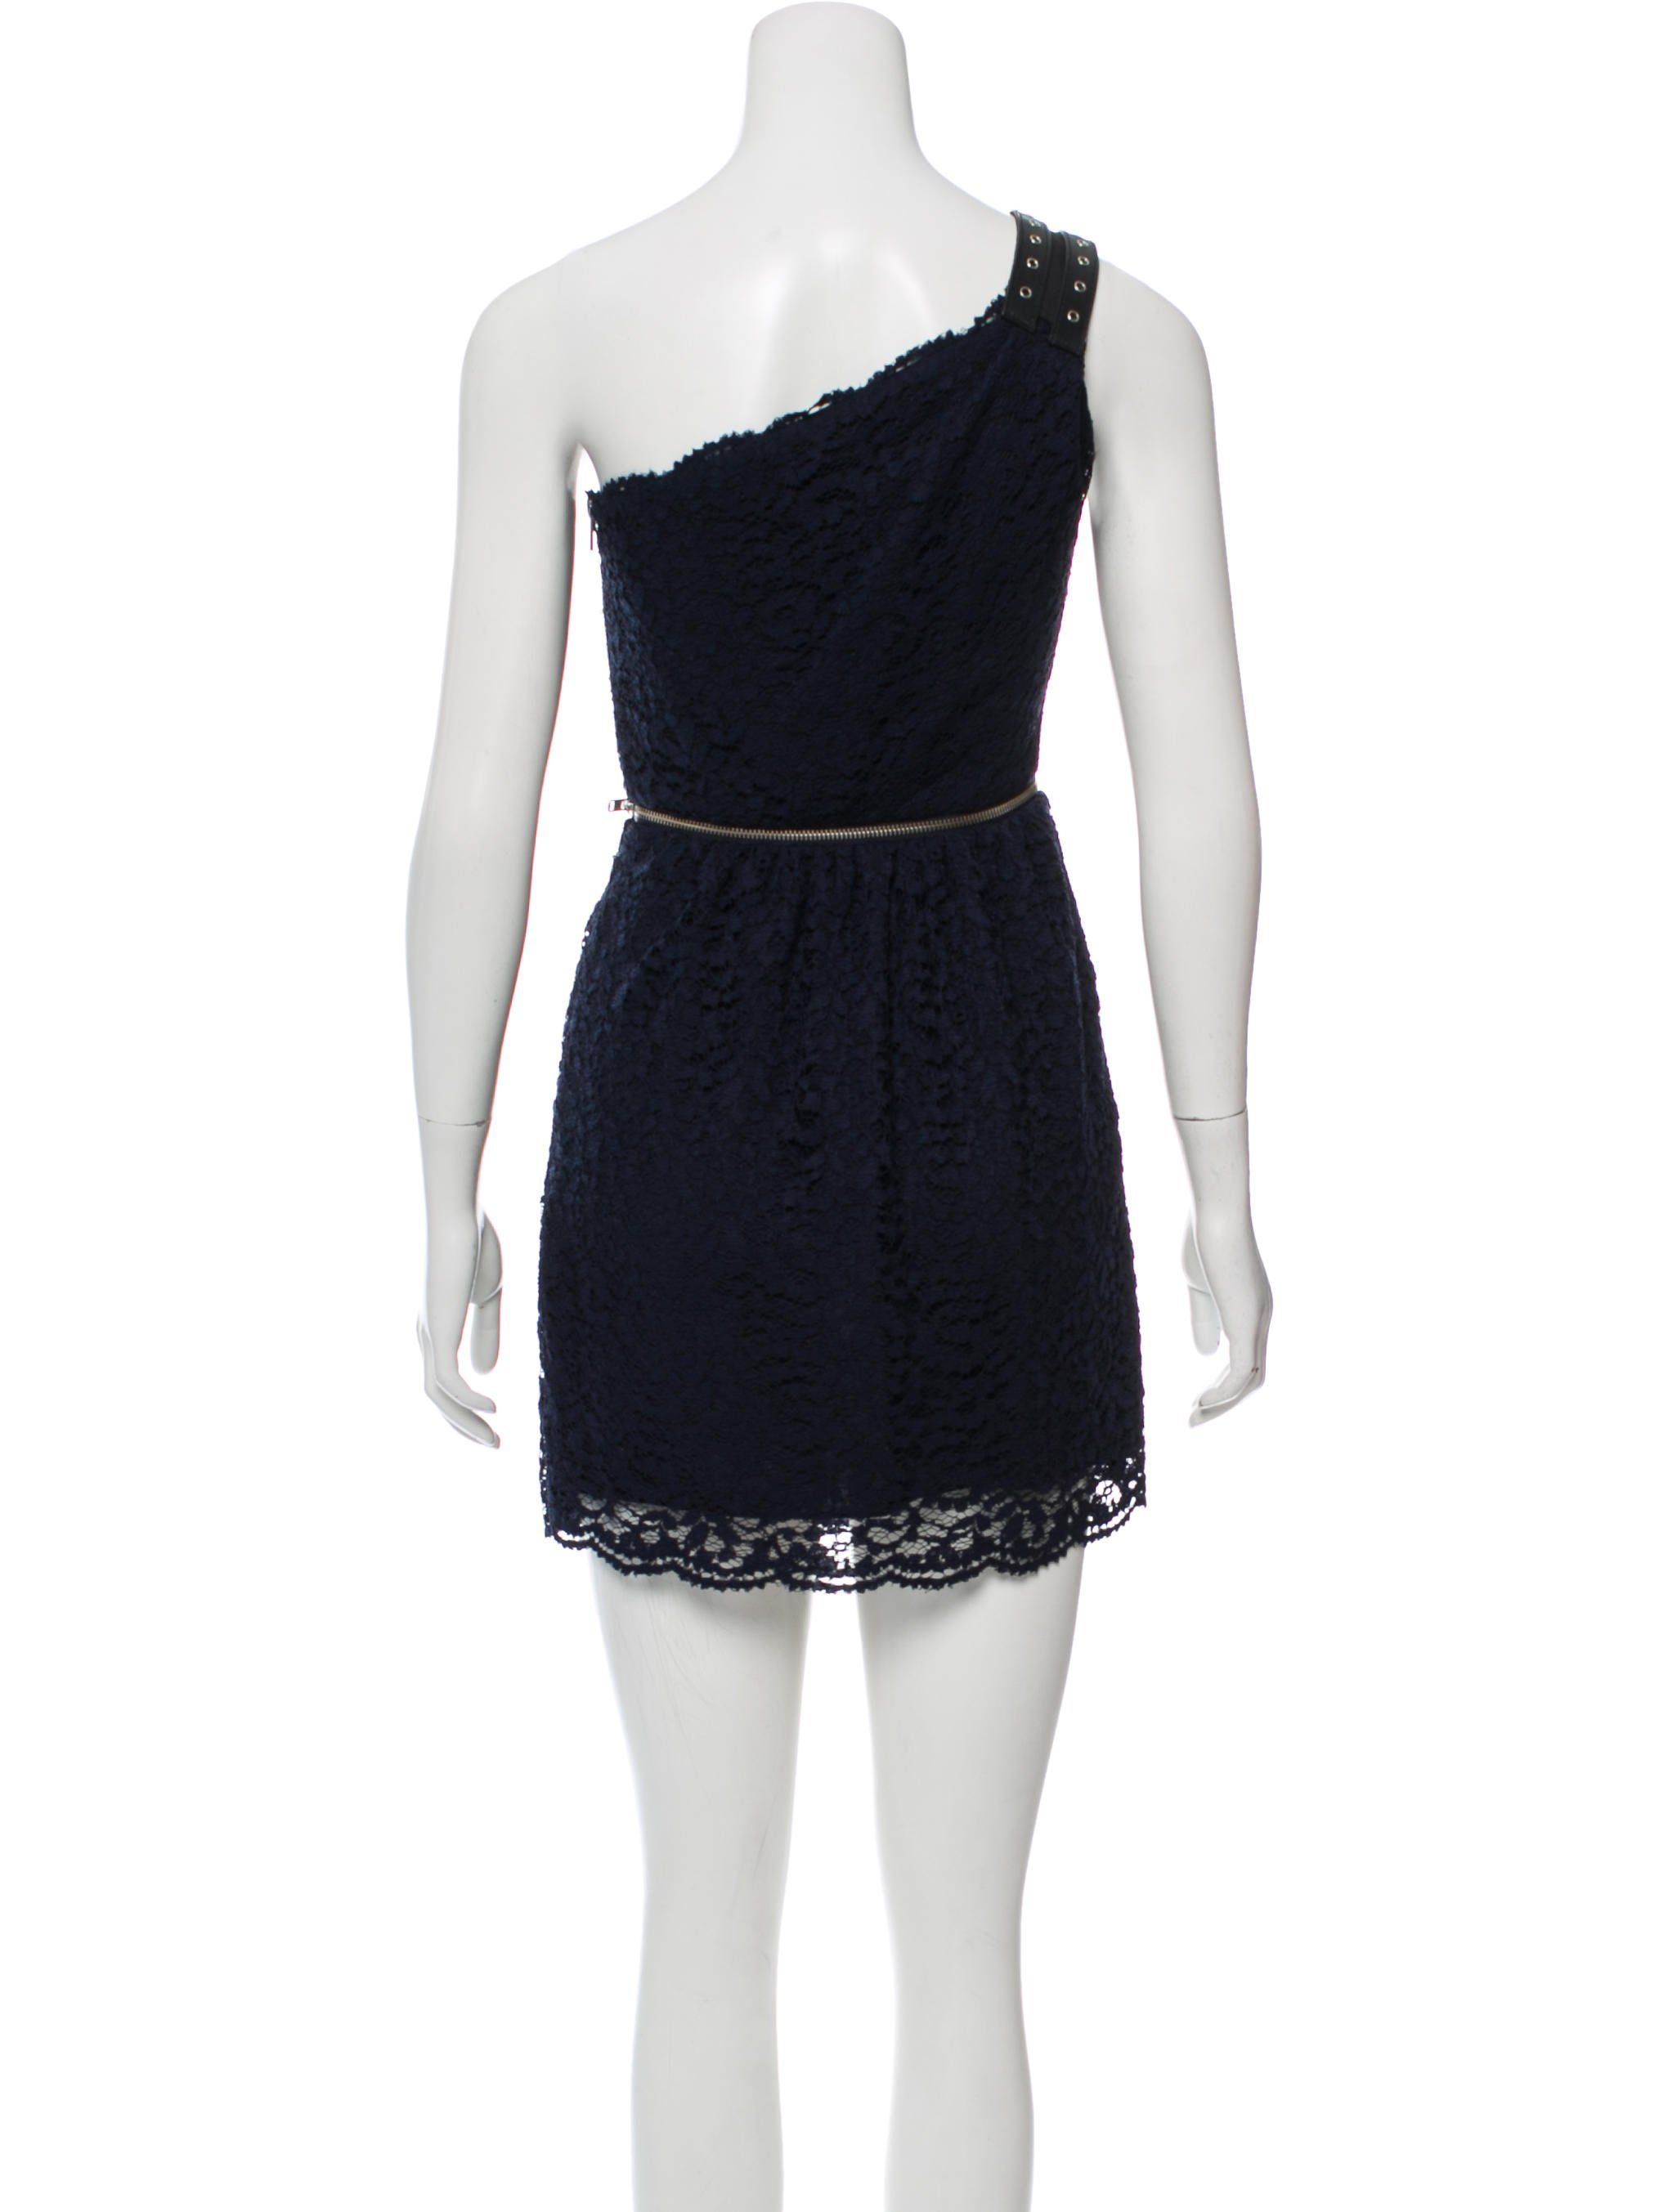 c4a17996233 Navy The Kooples one-shoulder mini dress with asymmetrical neck